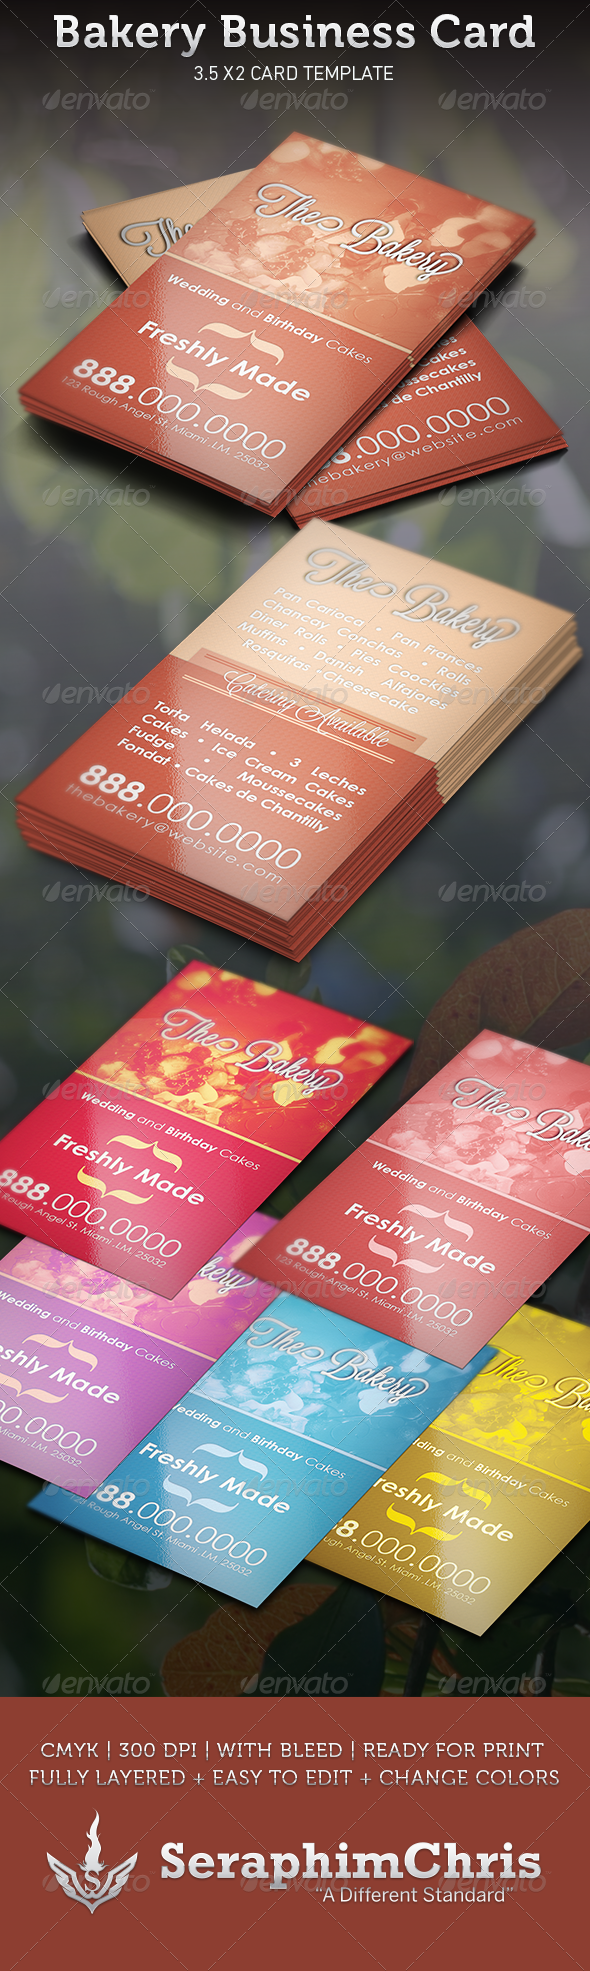 GraphicRiver Bakery Business Card Template 3533016